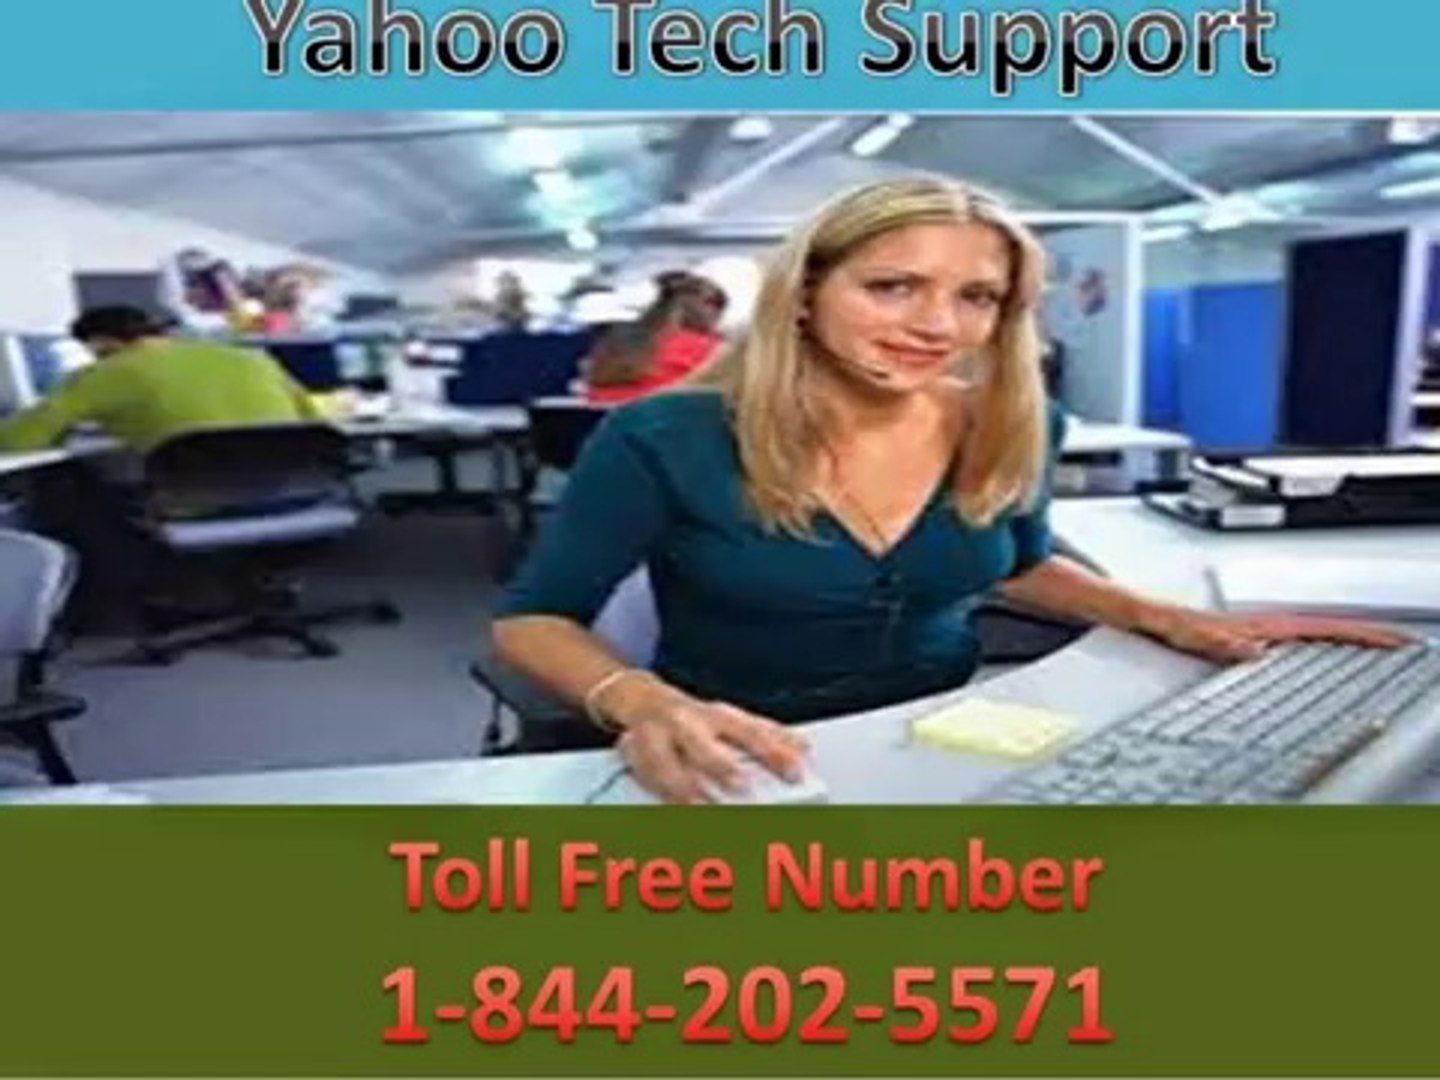 1-844-202-5571-Contact Support for Yahoo,Tech Support for Yahoo,Customer Service for Yahoo